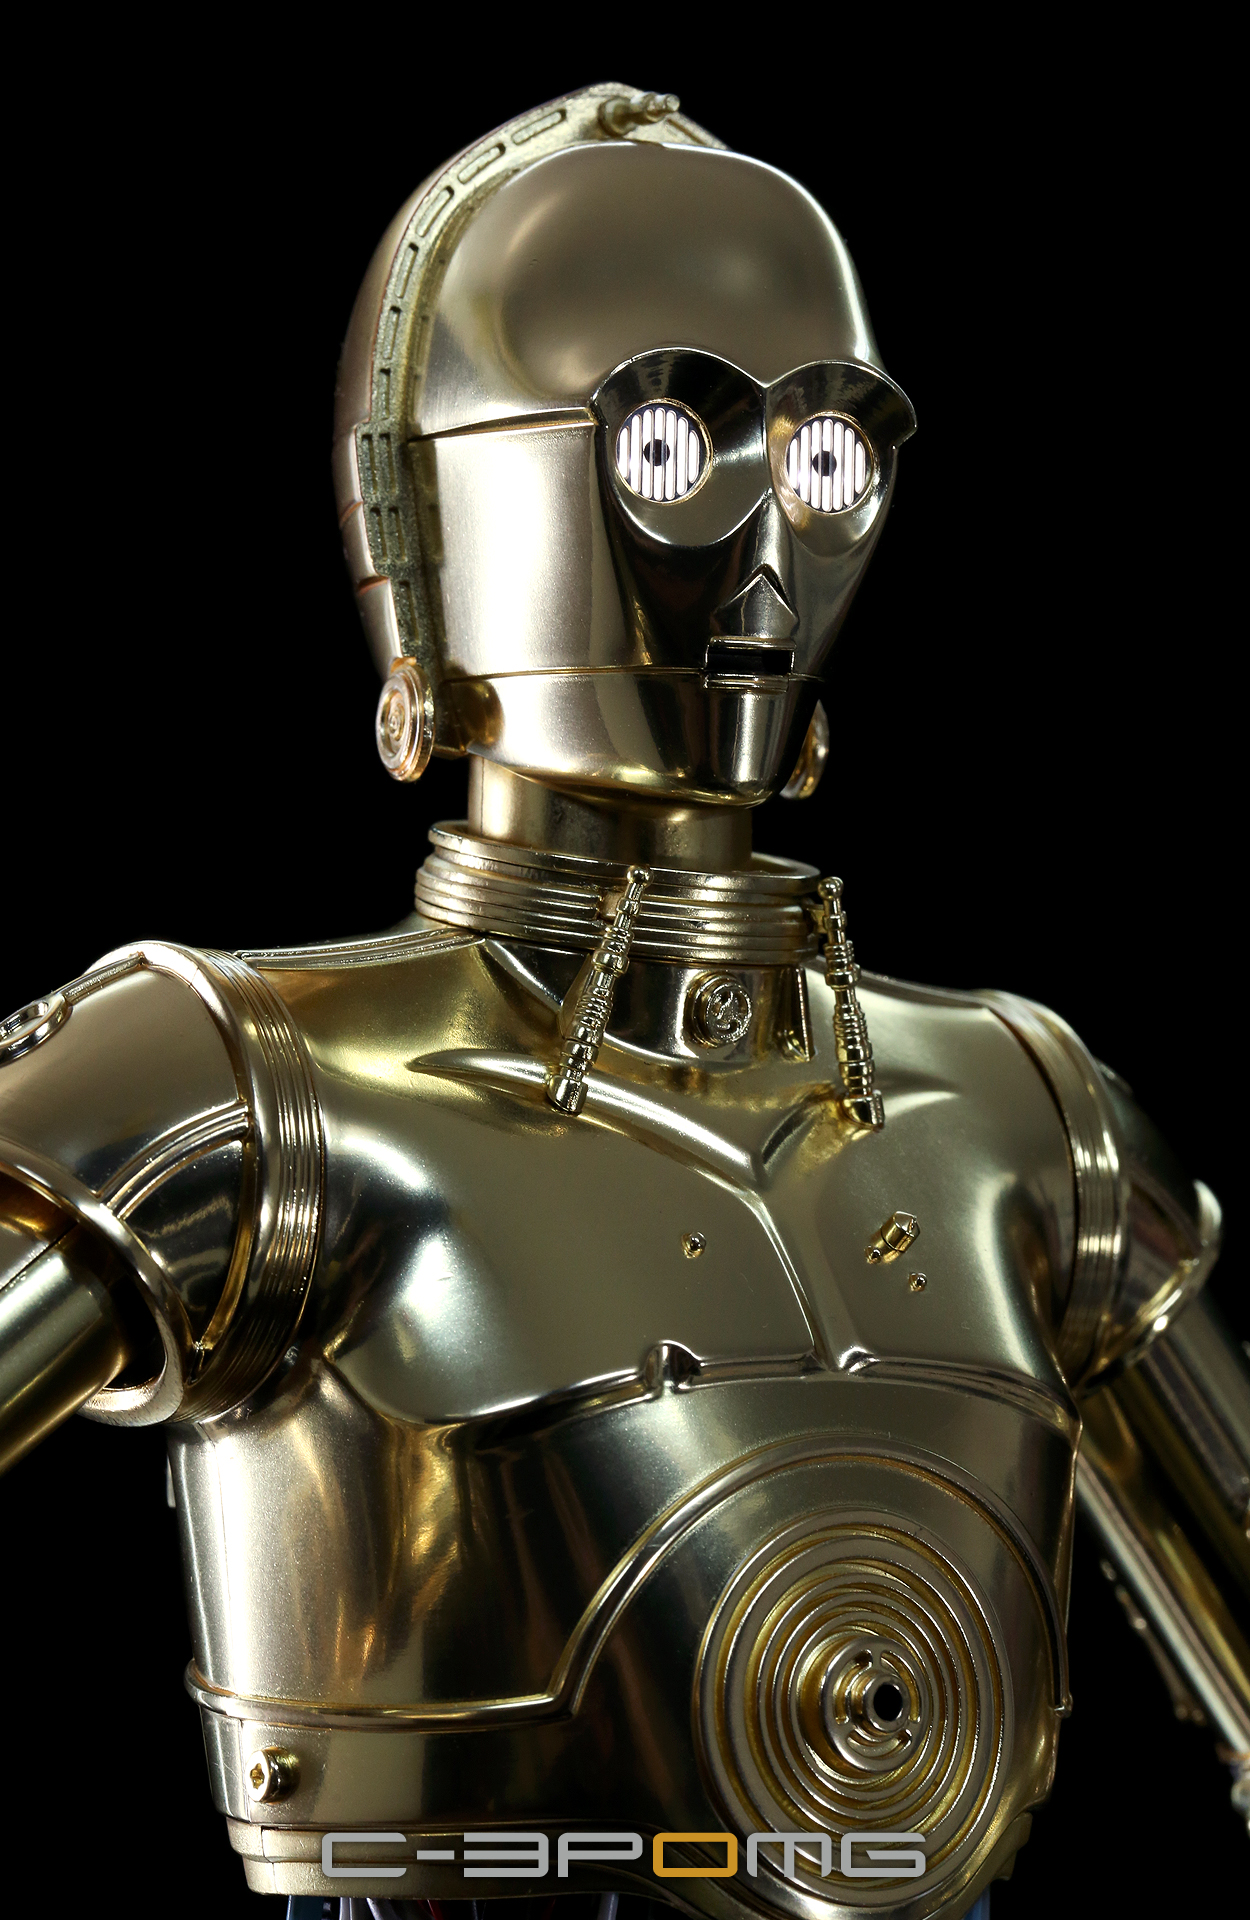 [Bandai] Star Wars: C-3PO - Perfect Model 1/6 scale - LANÇADO!!! - Página 2 C-3PO1129_zps004ed619